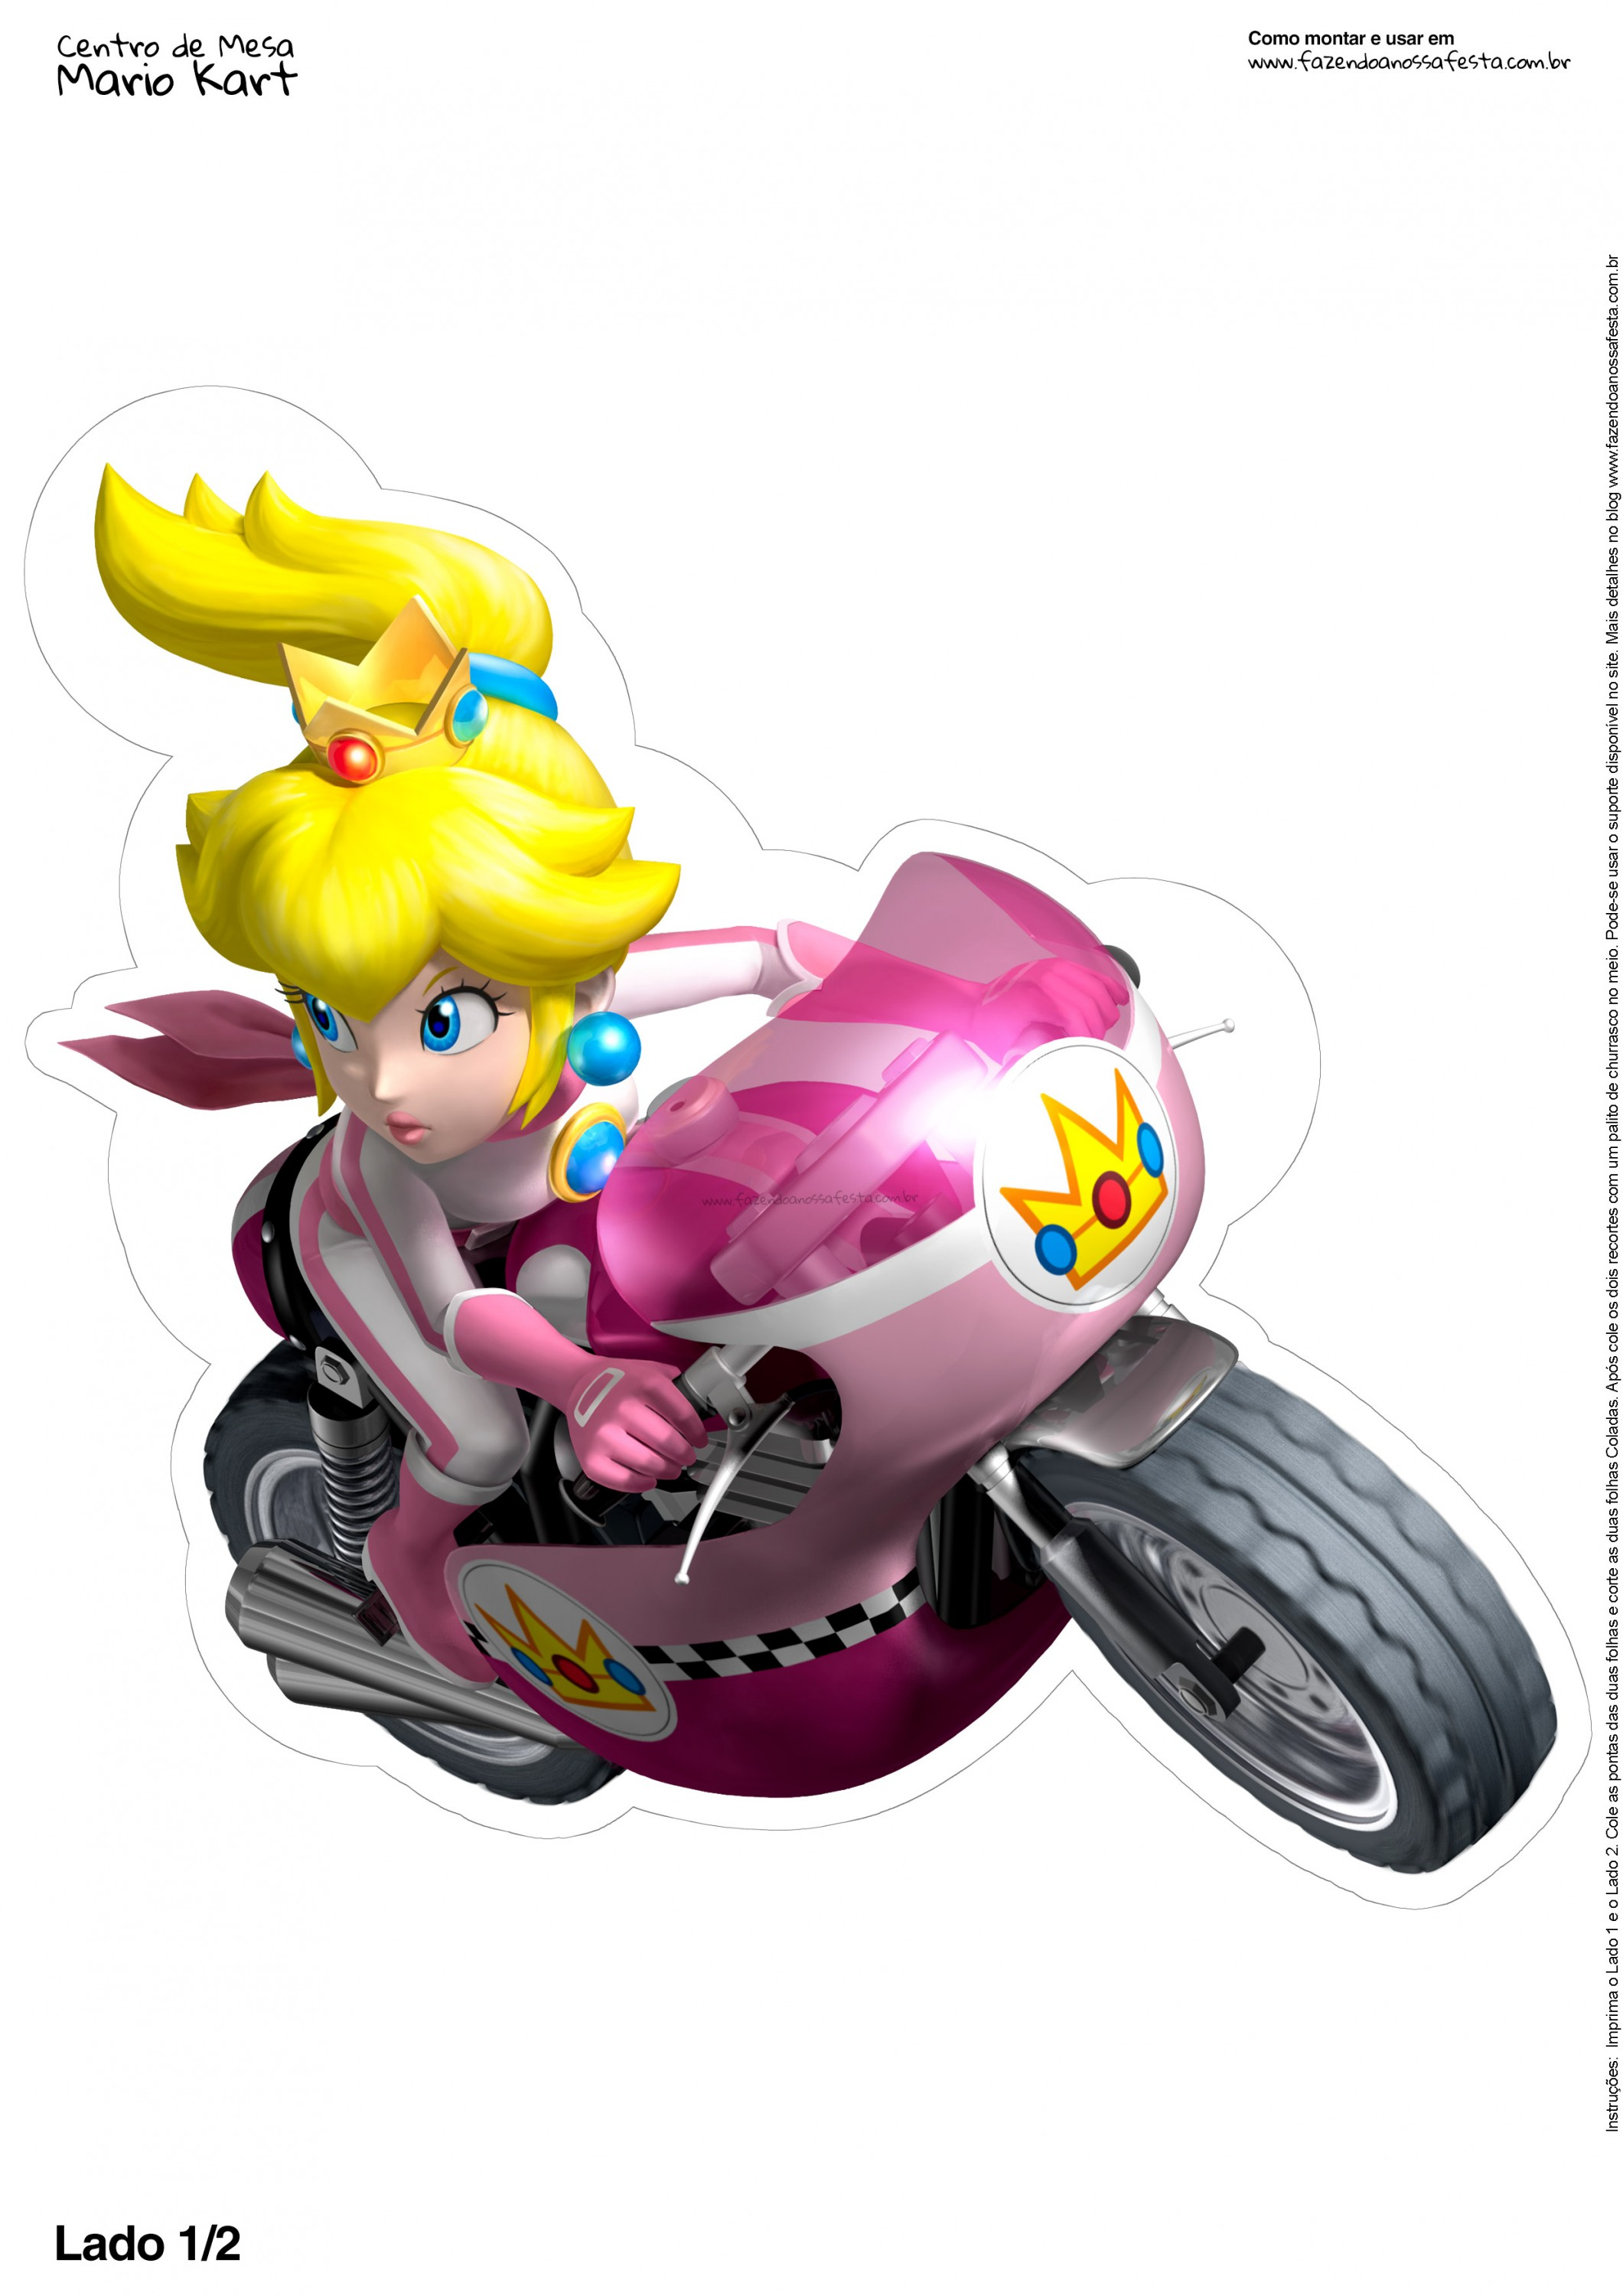 centro de mesa mario kart peach 1 2 fazendo a nossa festa. Black Bedroom Furniture Sets. Home Design Ideas